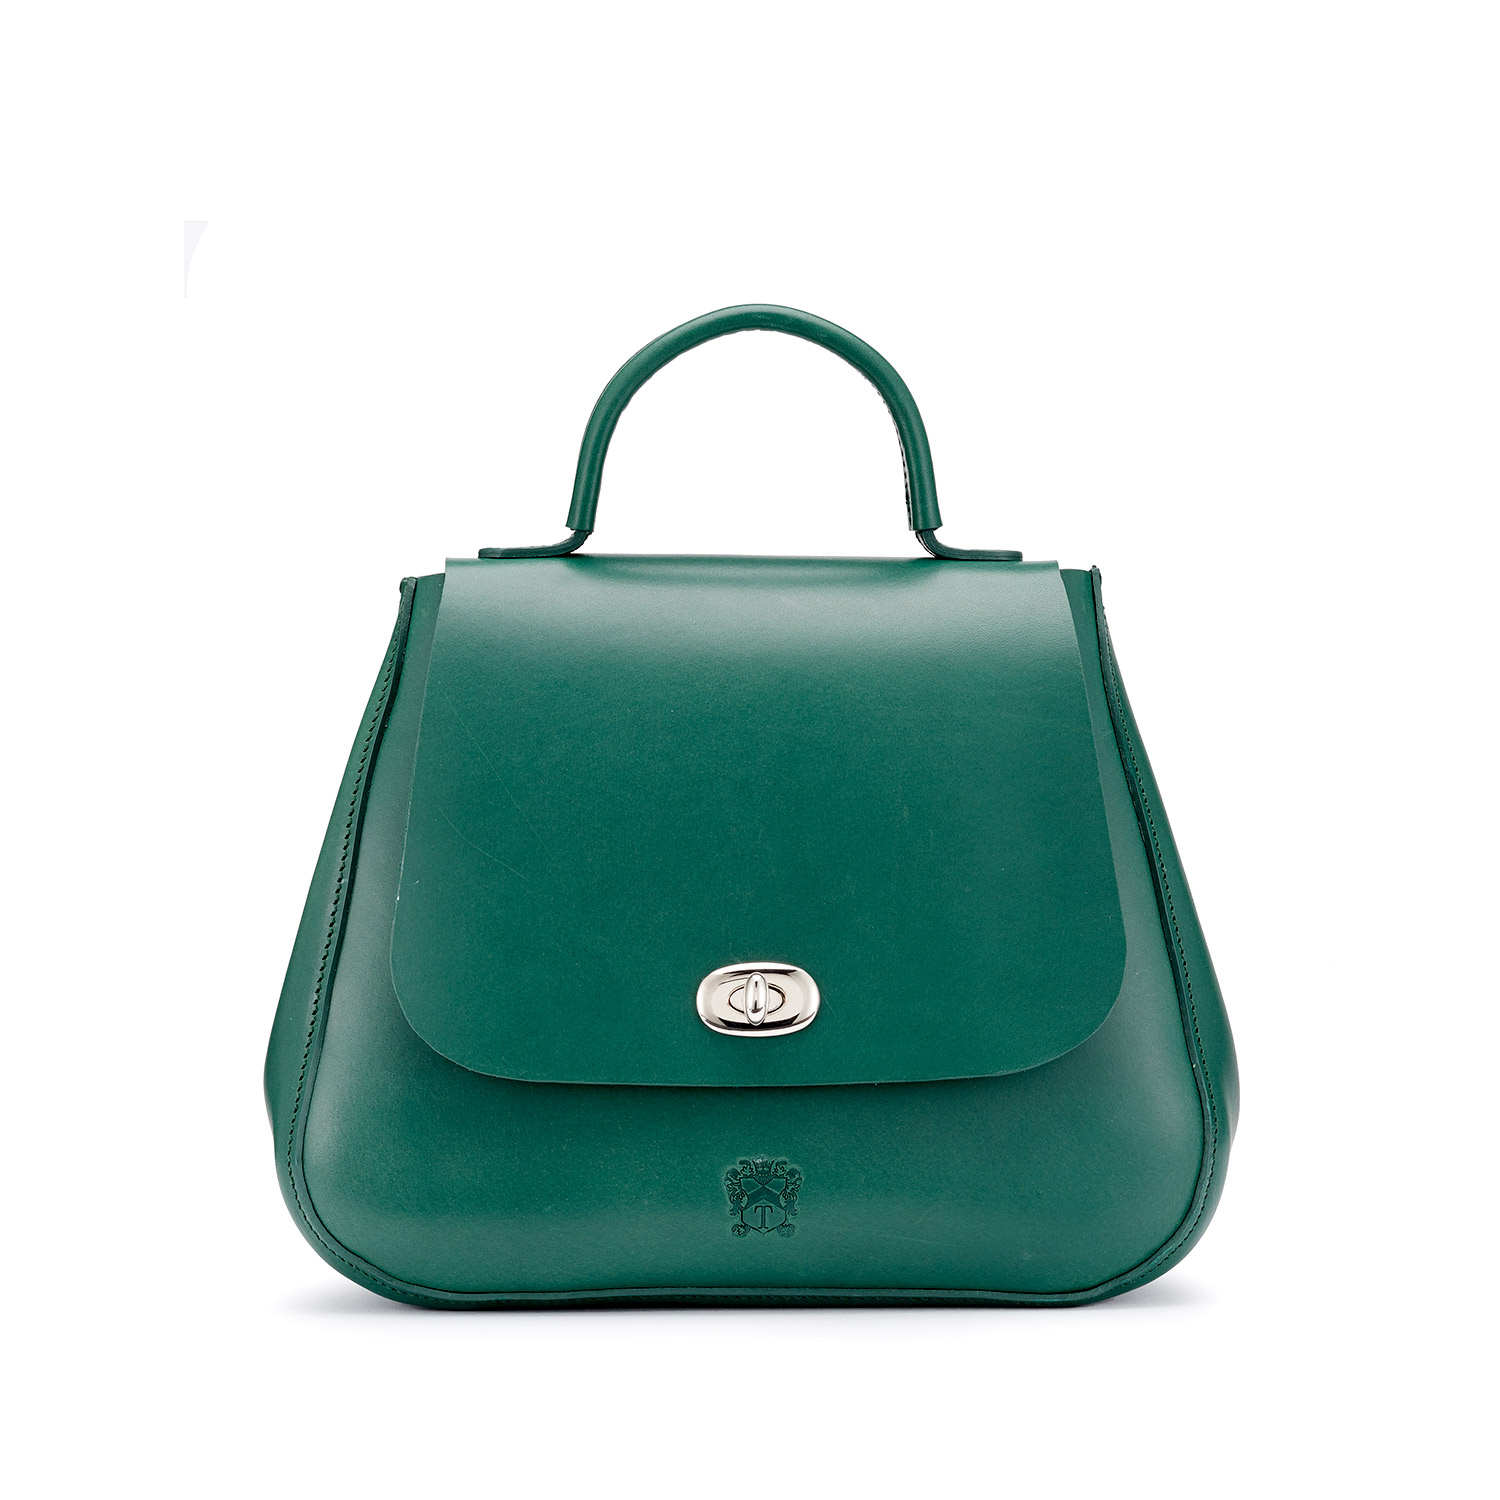 The Tusting Holly Handbag in Spruce Green